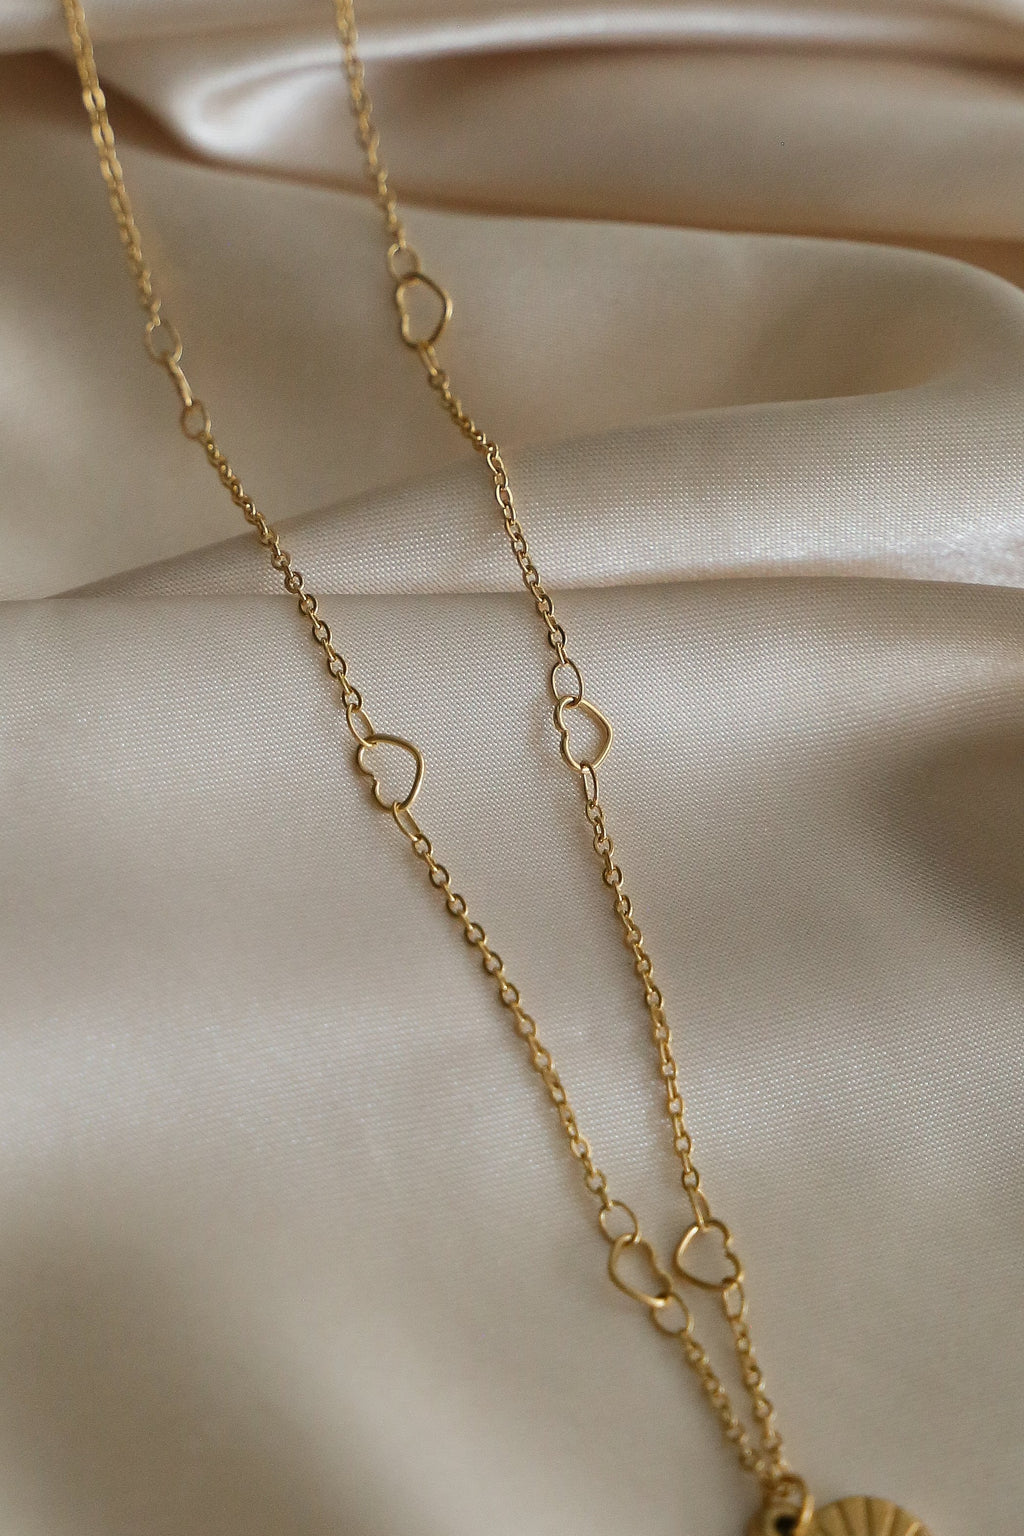 Amour Necklace - Boutique Minimaliste